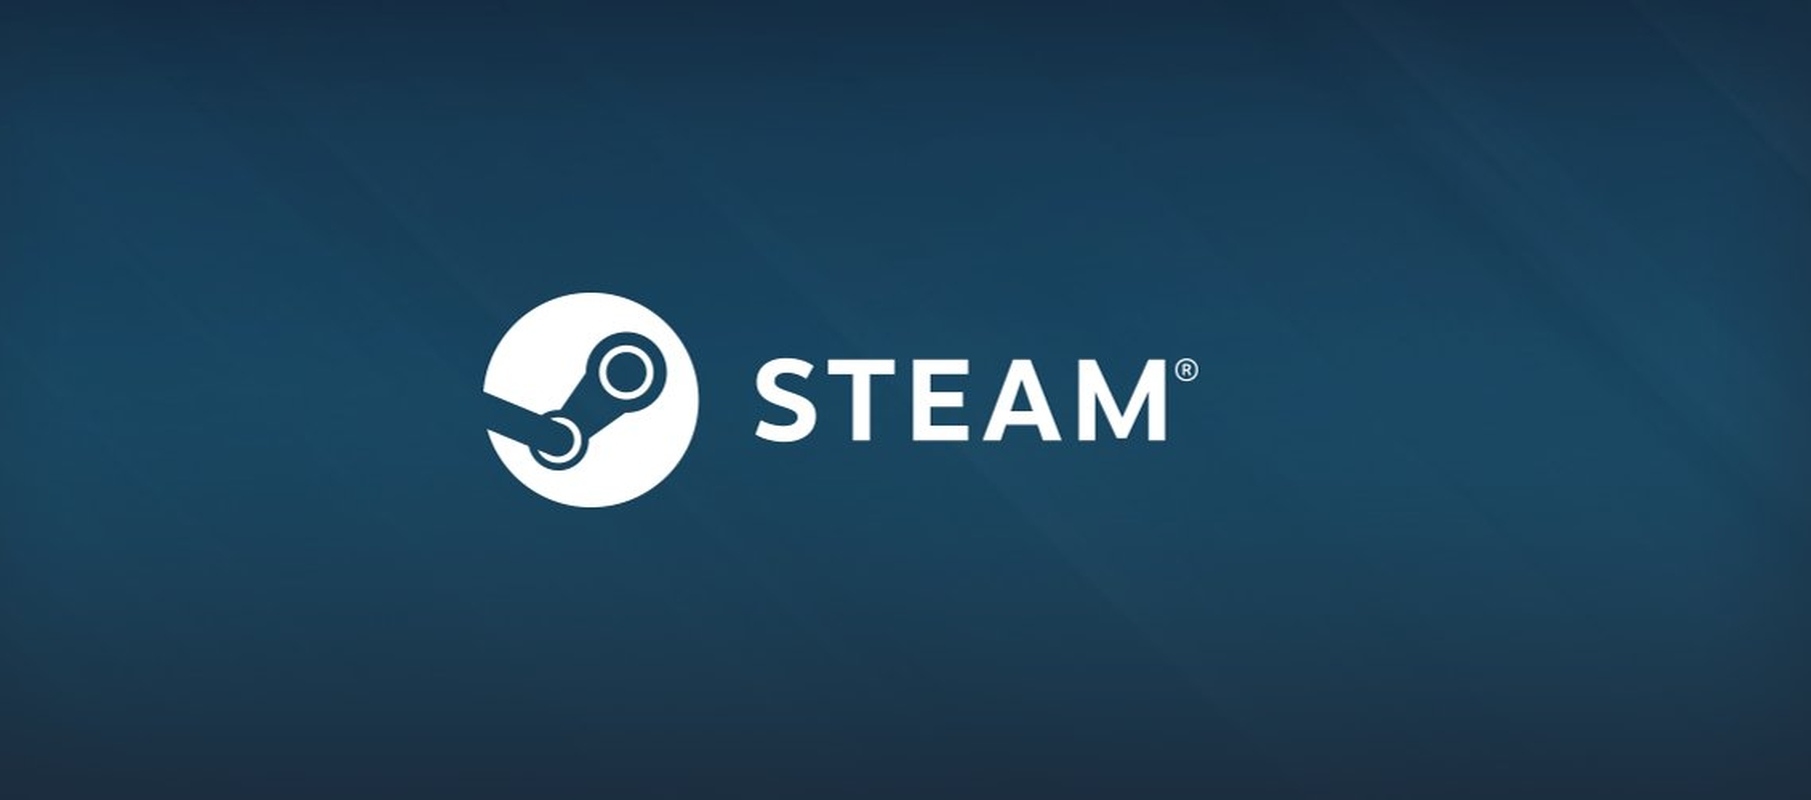 Steam Experiences Unscheduled Down Time, Several Services Become Inaccessible To Users